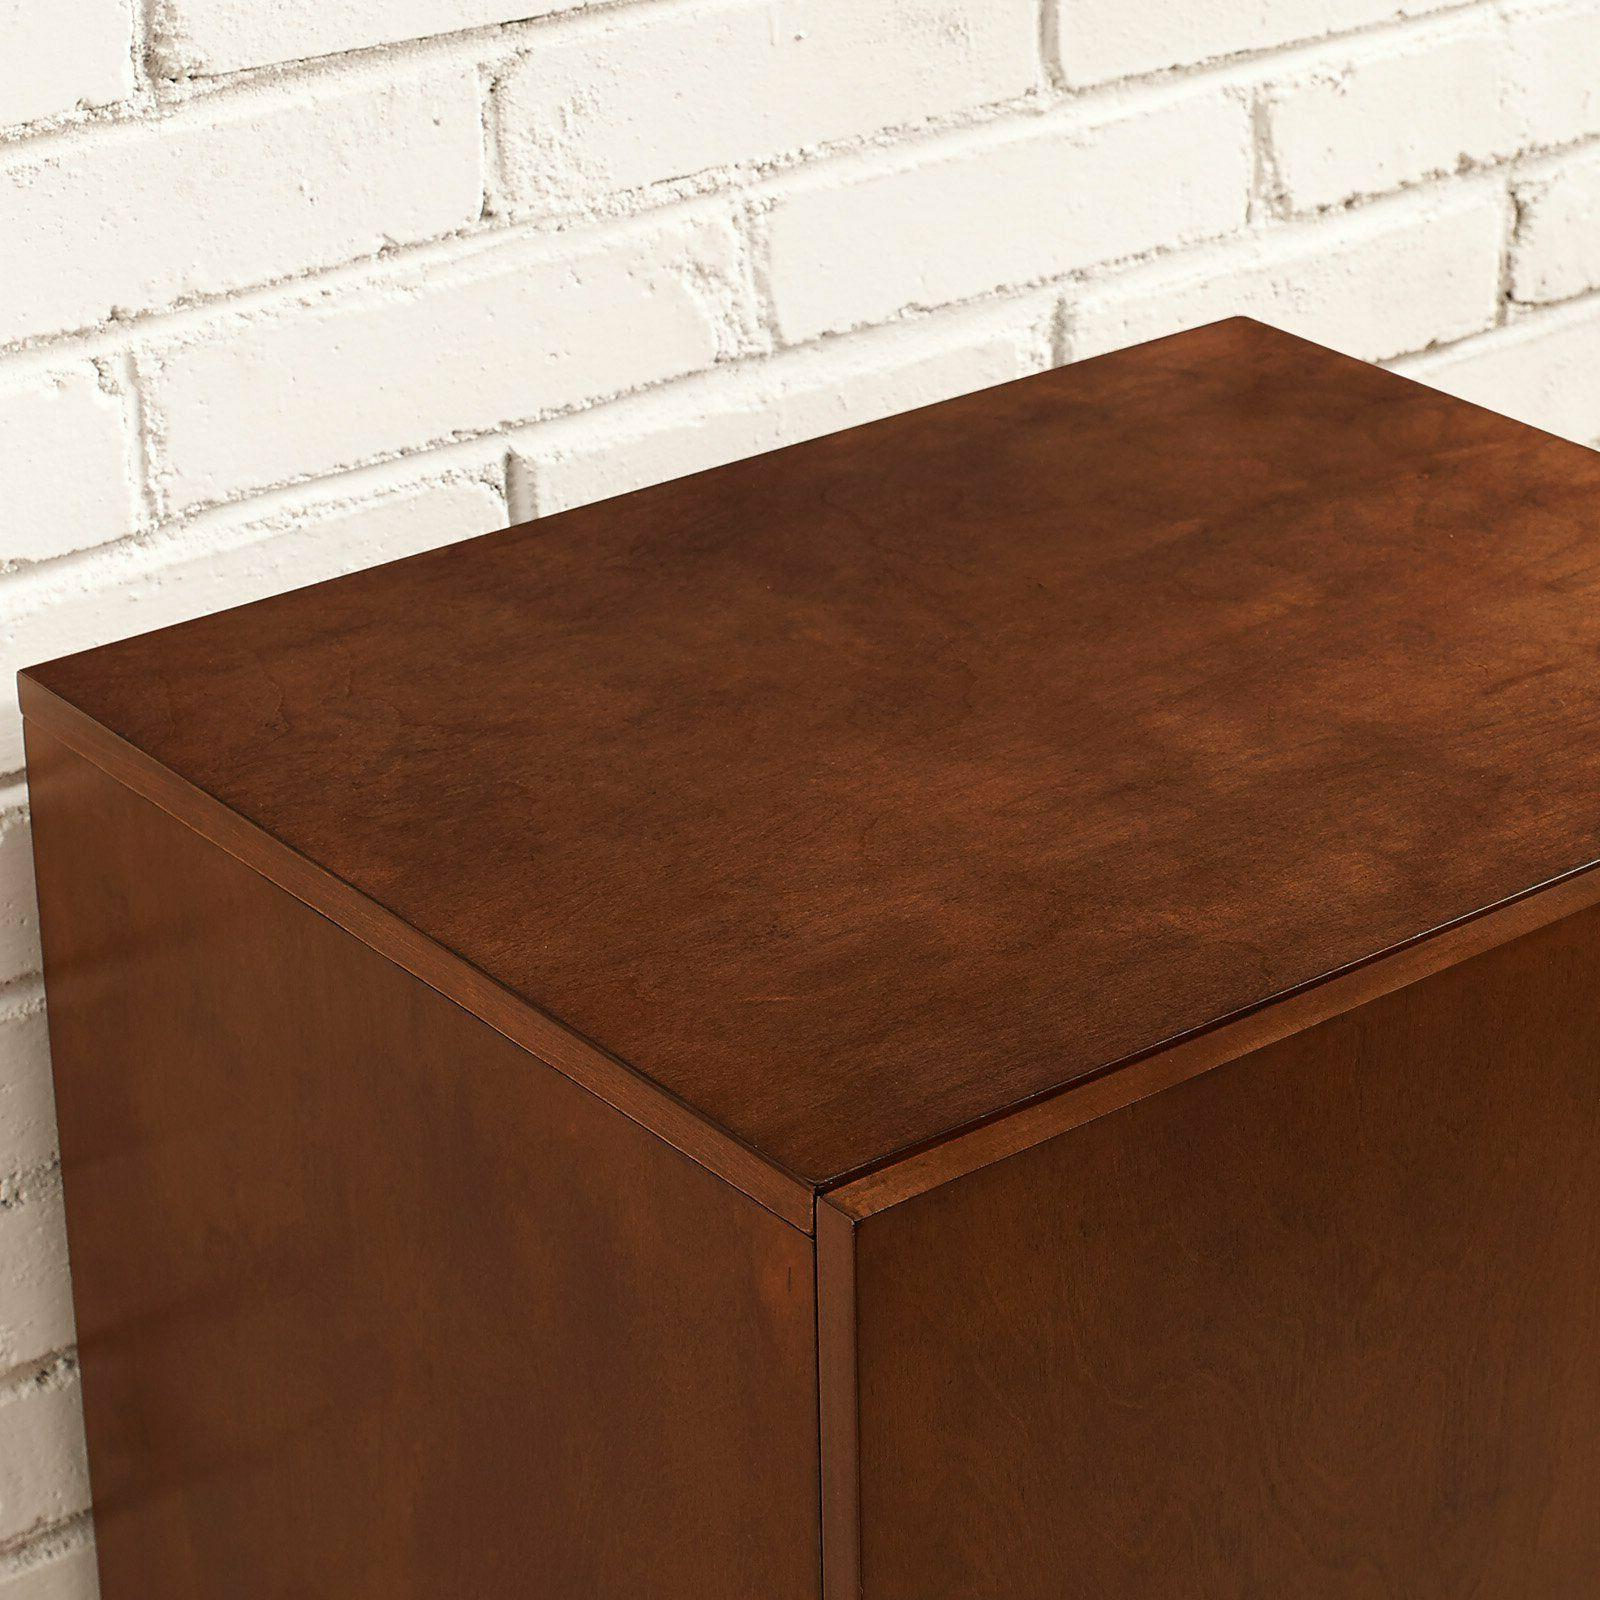 Record Stand Rack Storage Cabinet Furniture